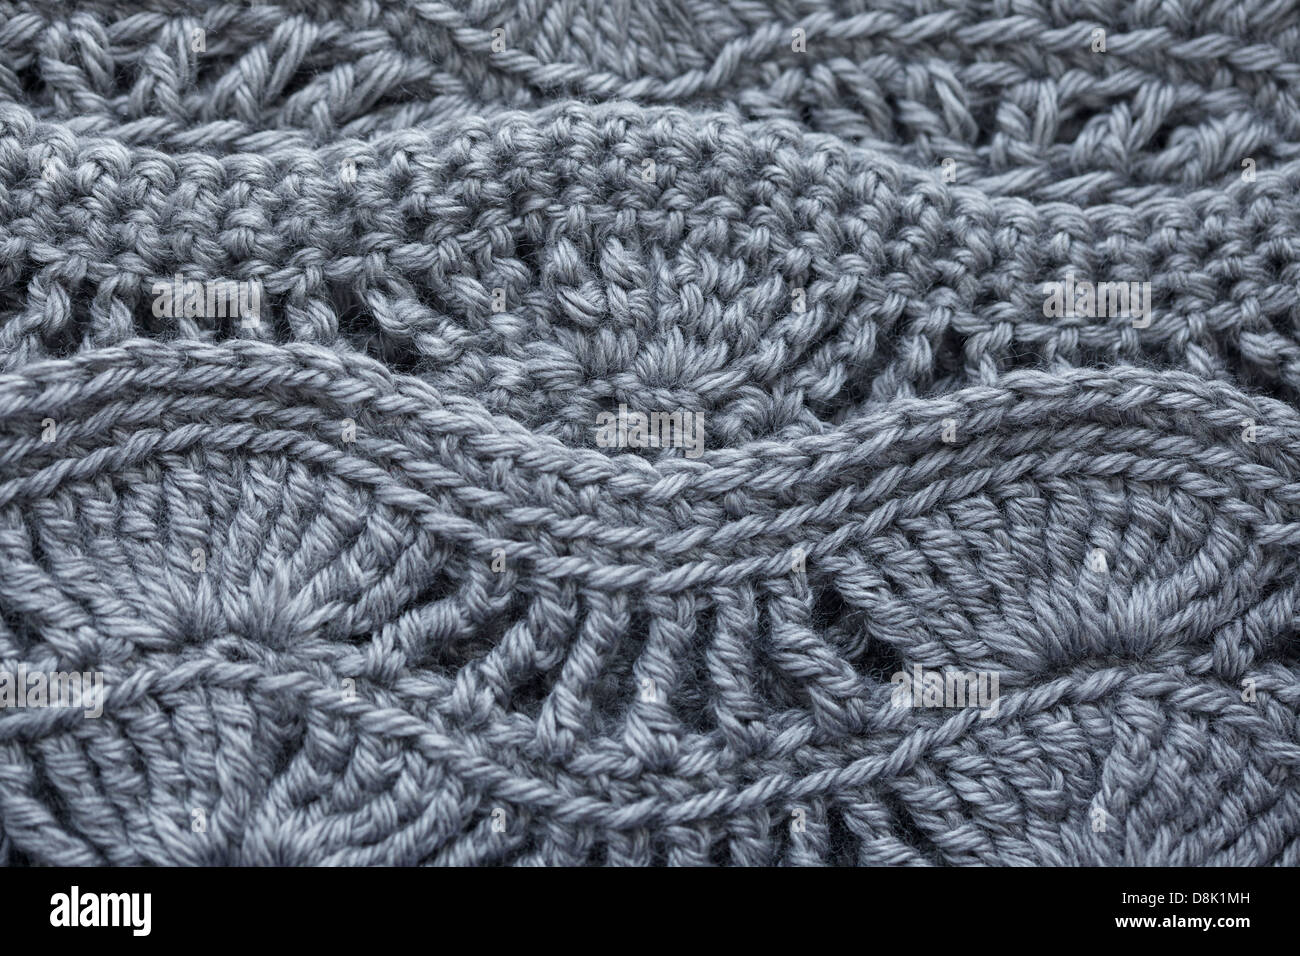 Taupe brown crocheted wool yarn closeup as background texture - Stock Image